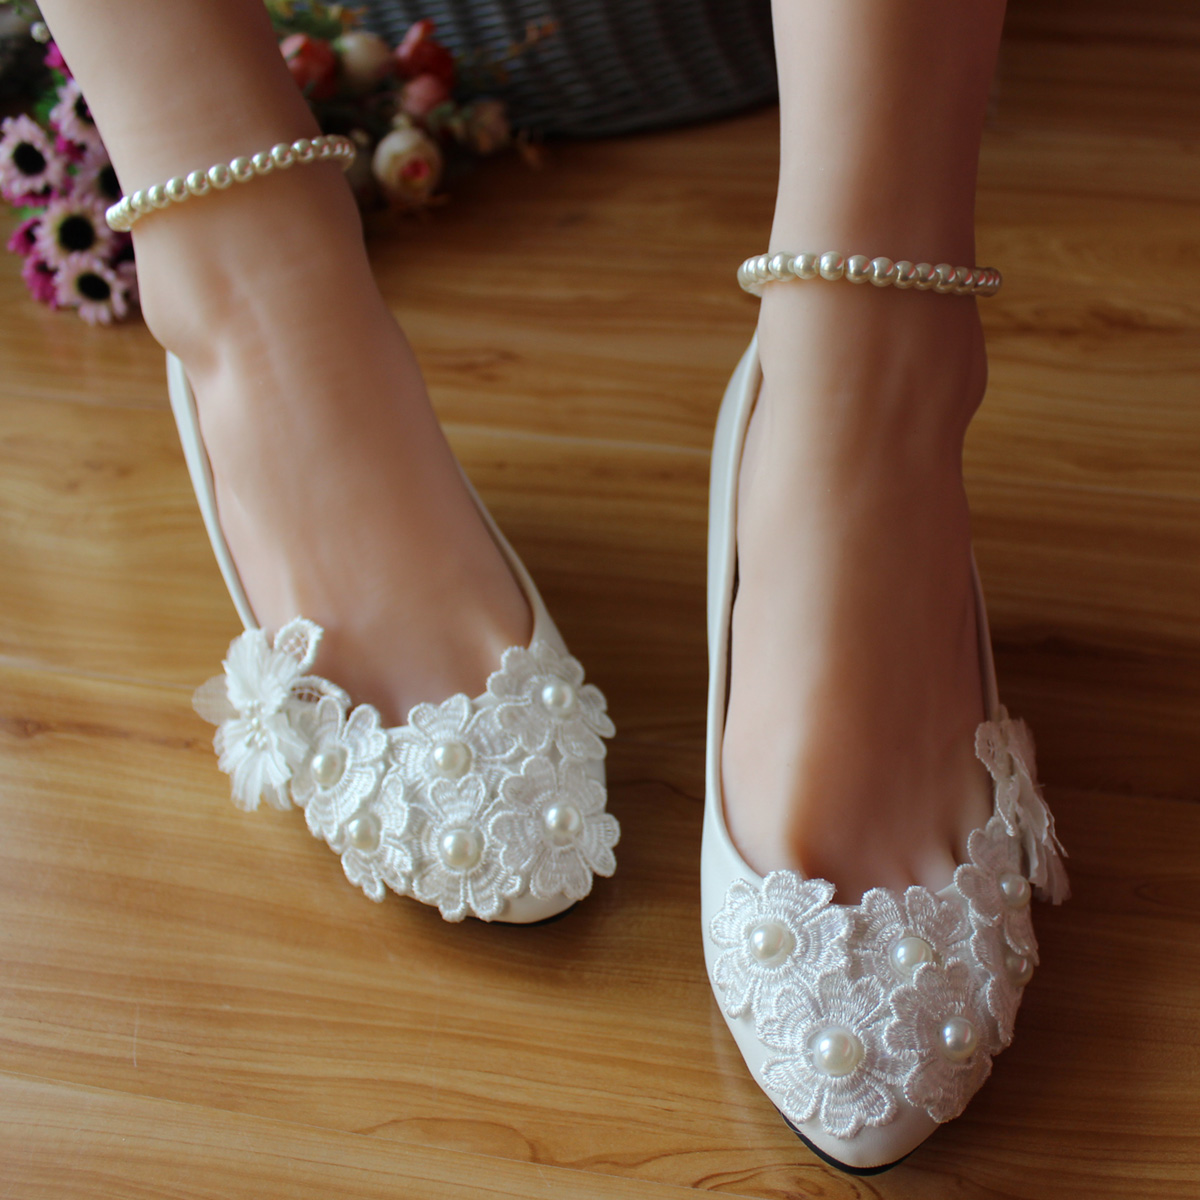 Pearls bandage dress the bride wedding shoes handmade lace flower bridesmaid thin heels shoes<br><br>Aliexpress